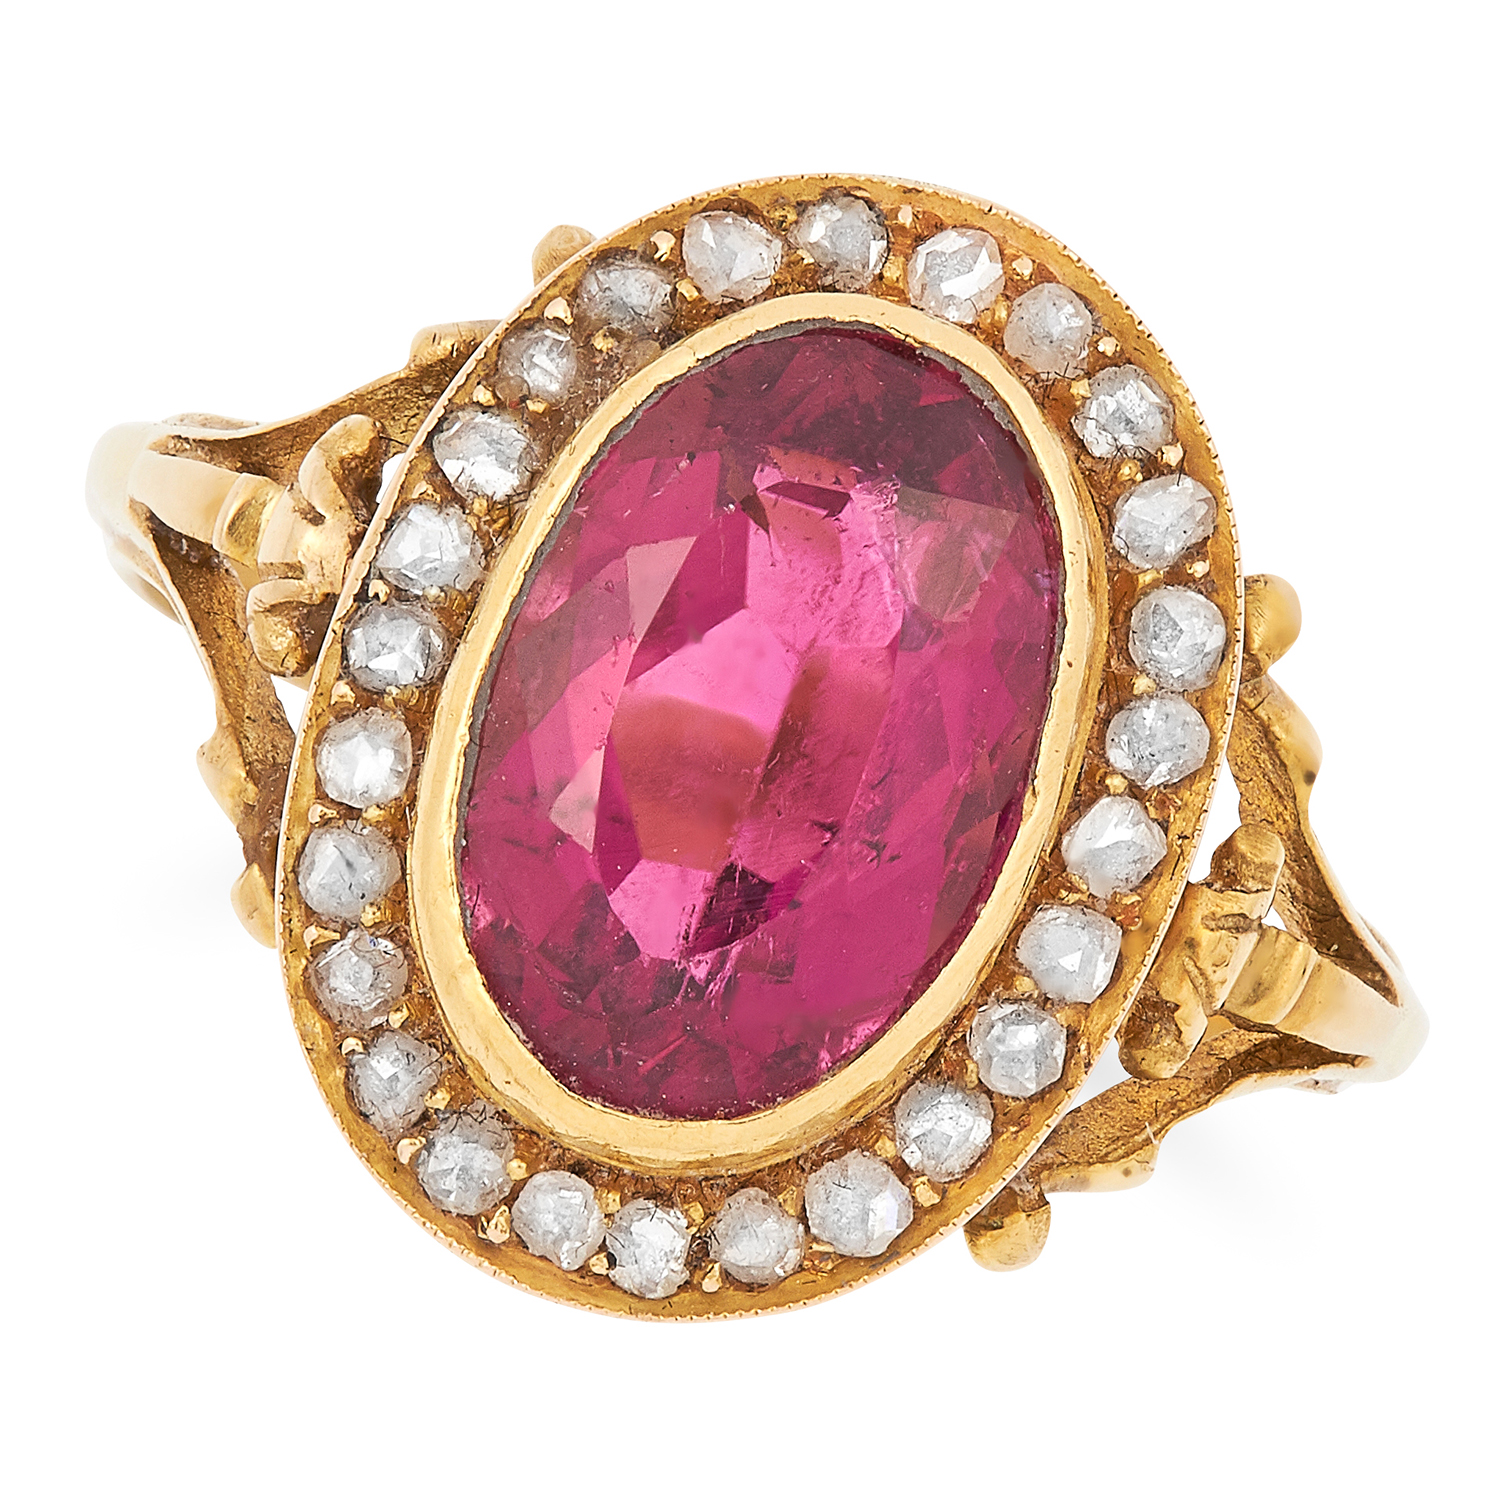 Los 44 - ANTIQUE TOURMALINE AND DIAMOND CLUSTER RING set with an oval cut tourmaline in a border of rose